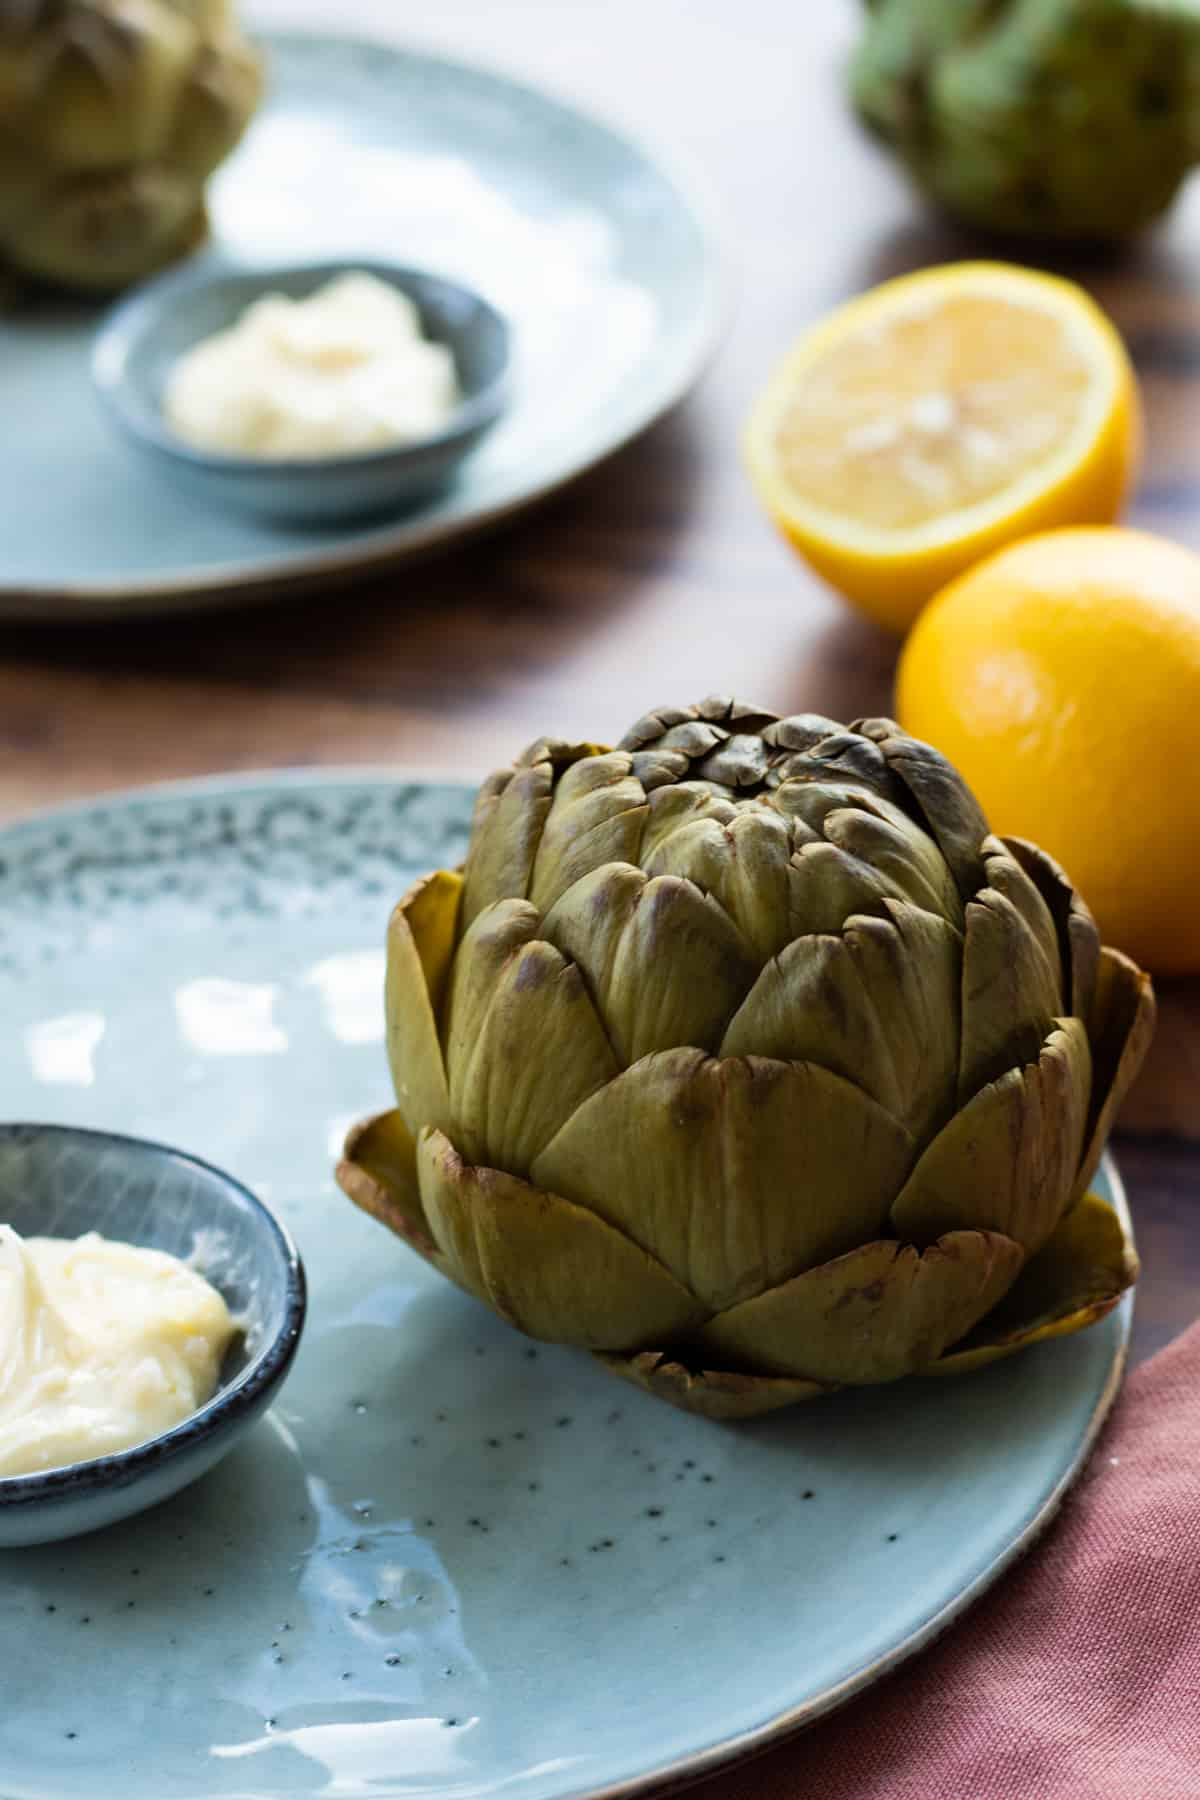 a cooked artichoke on a blue plate next to a bowl of whipped lemon butter